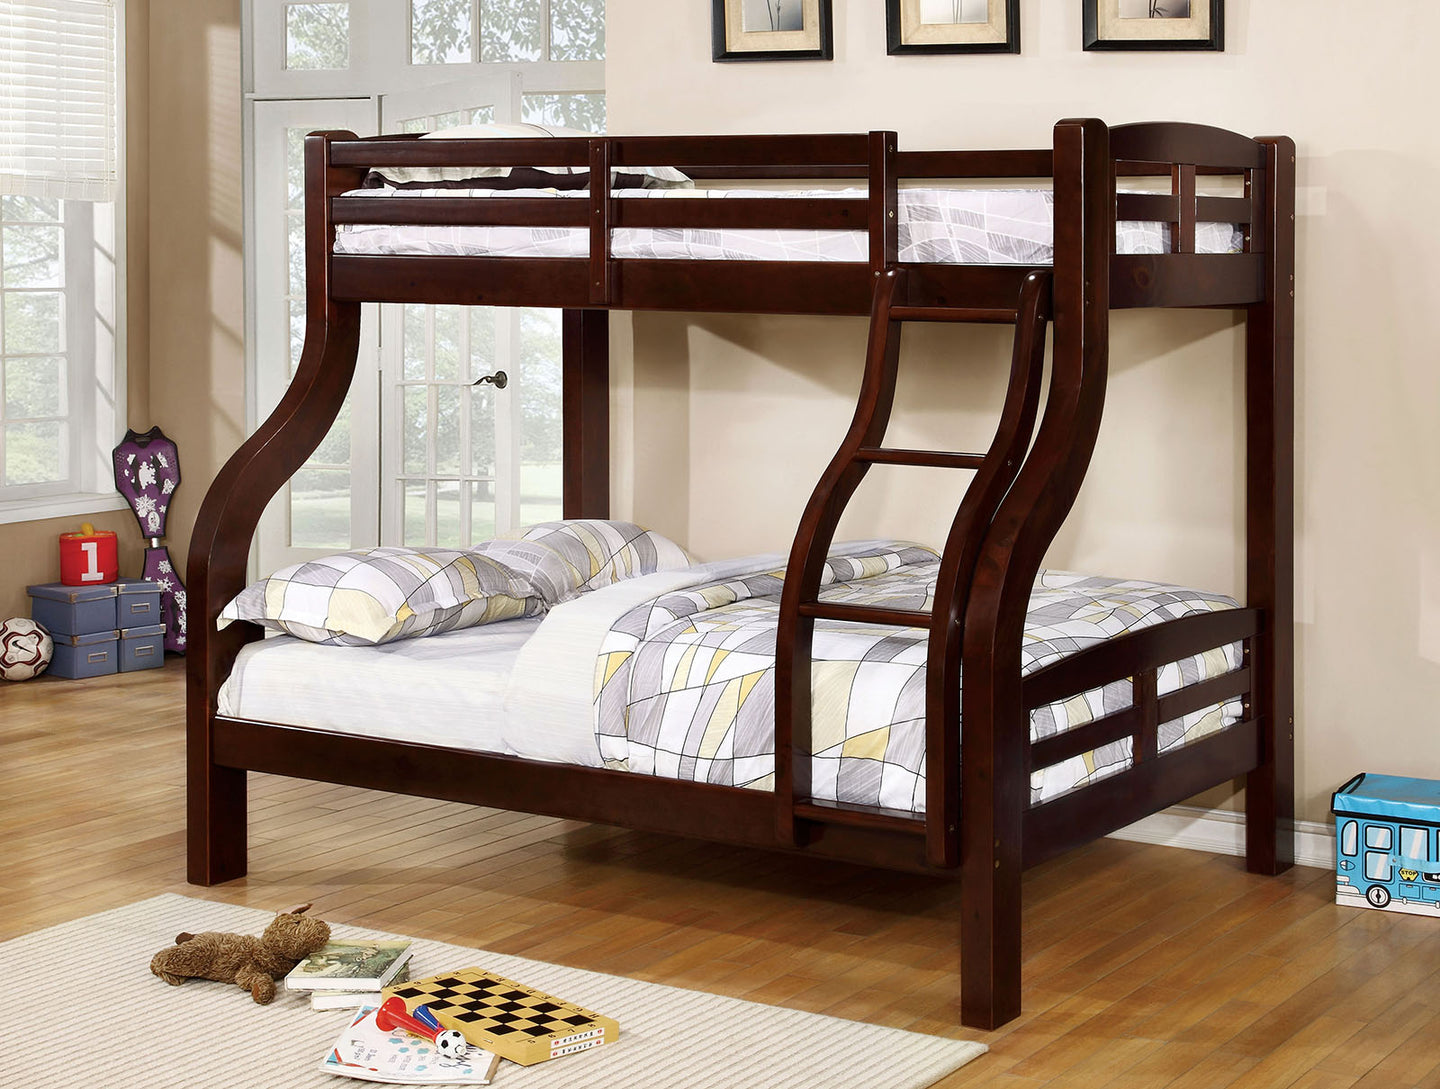 Solpine CM-BK618EX-TF Transitional Espresso Twin over Full Bunk Bed